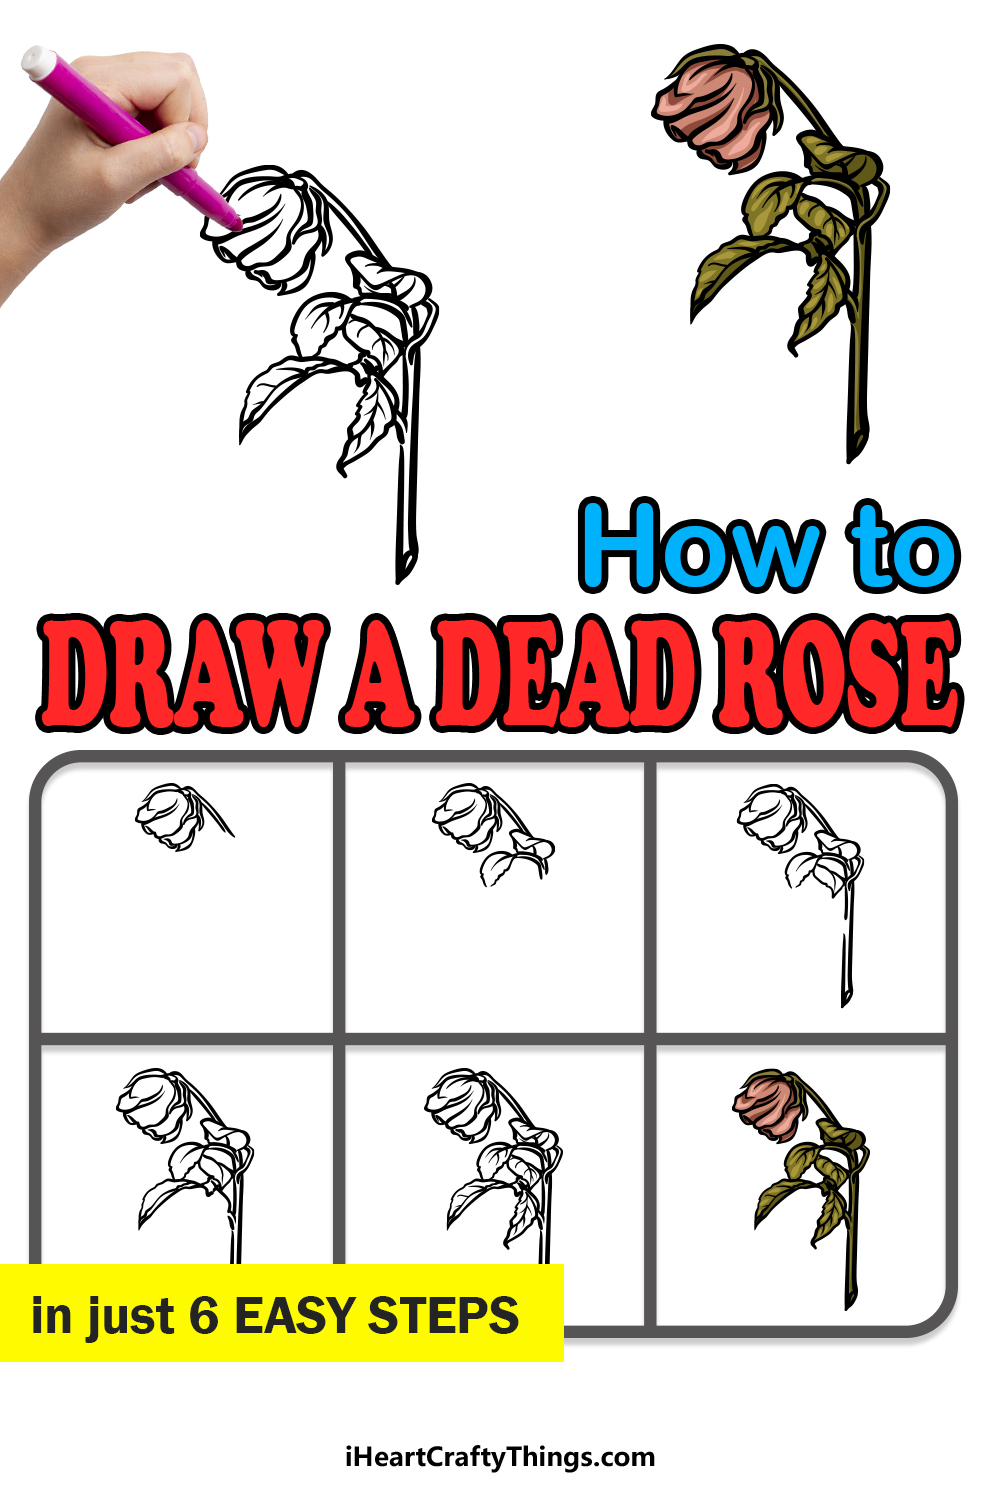 how to draw a dead rose in 6 easy steps